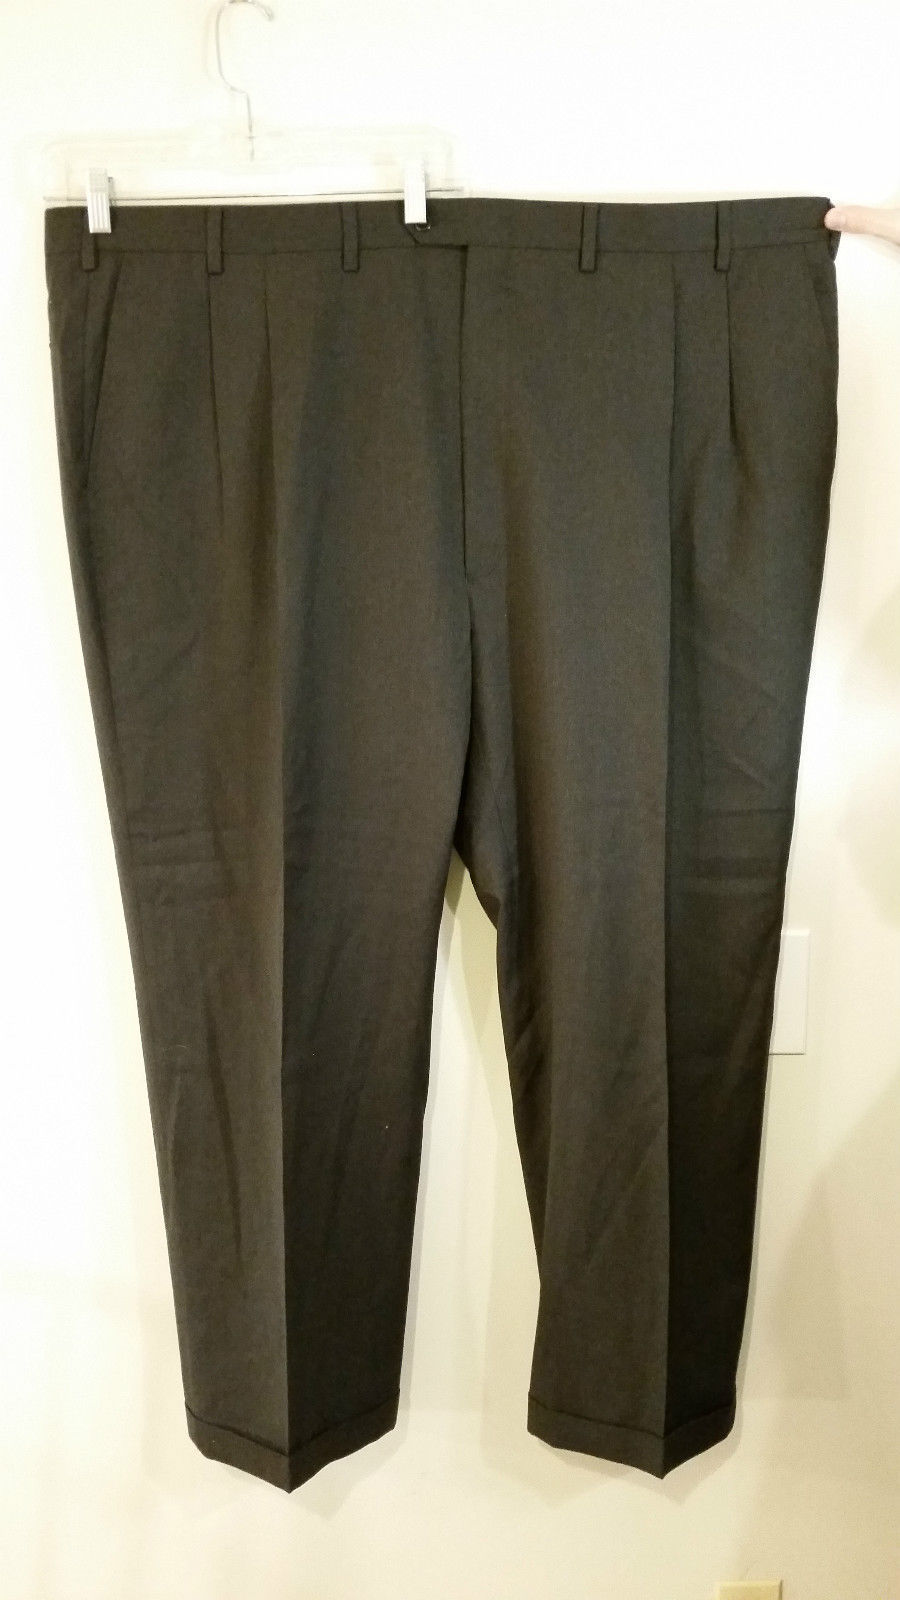 Jos A Bank Executive Collection Black Pleated Front Dress Pants No Size Tag